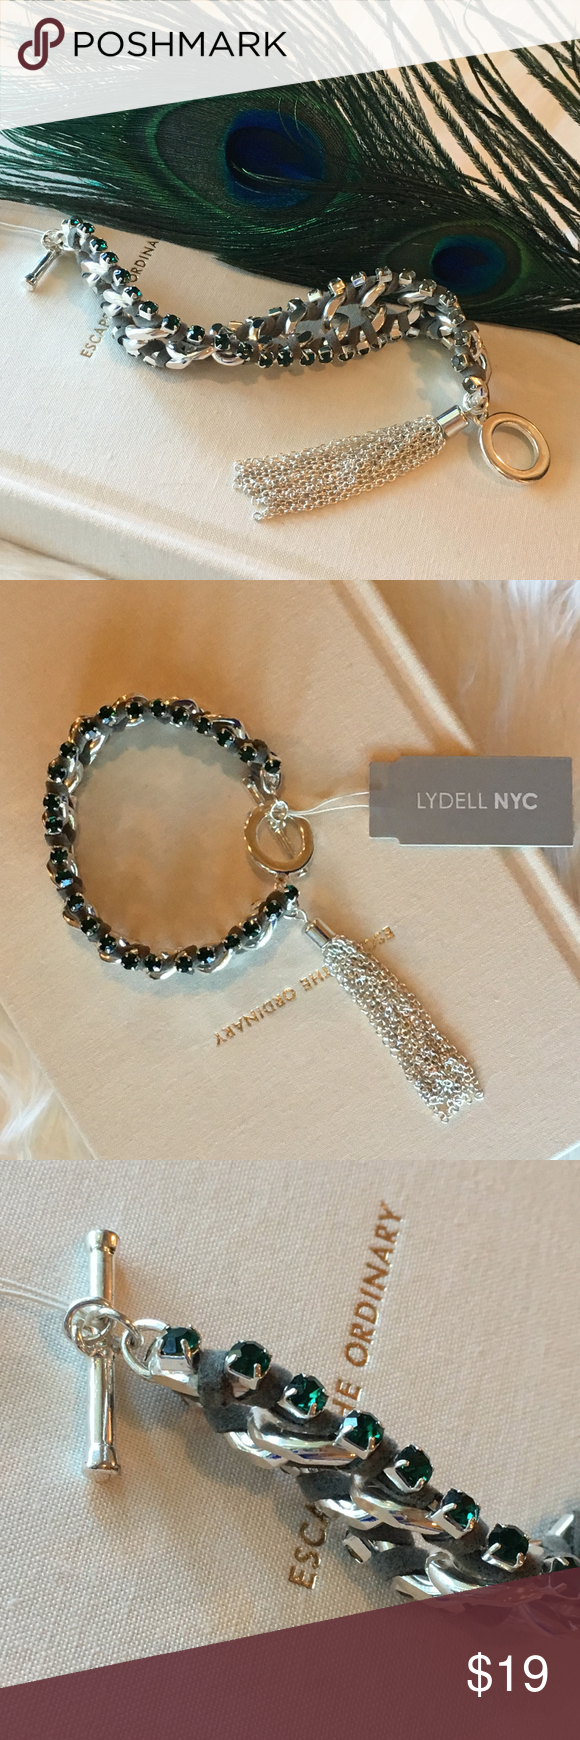 NEW Lydell NYC Link Suede Crystal Tassel Bracelet Nyc